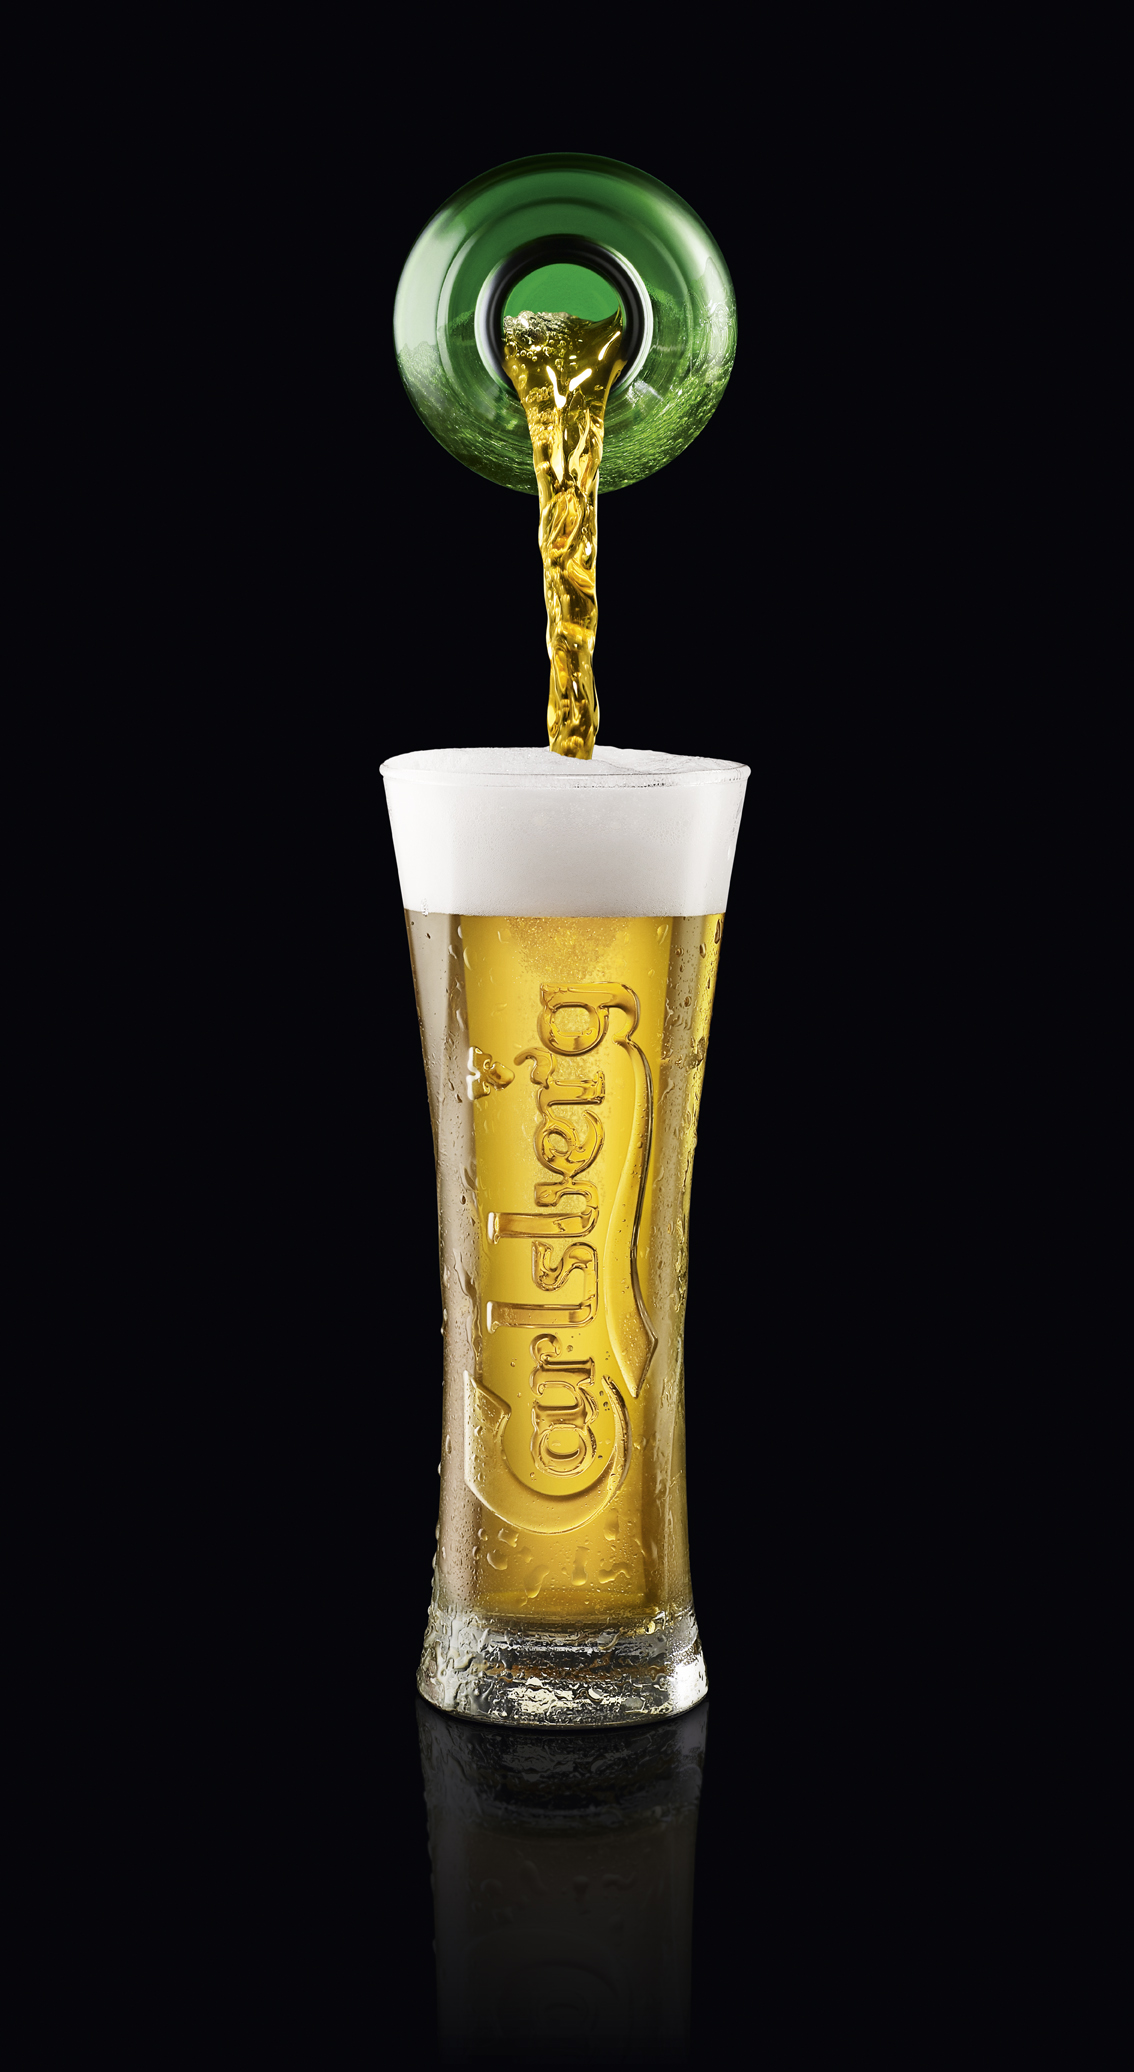 Carlsberg Beer Company And Their Global Entry Expansion ...